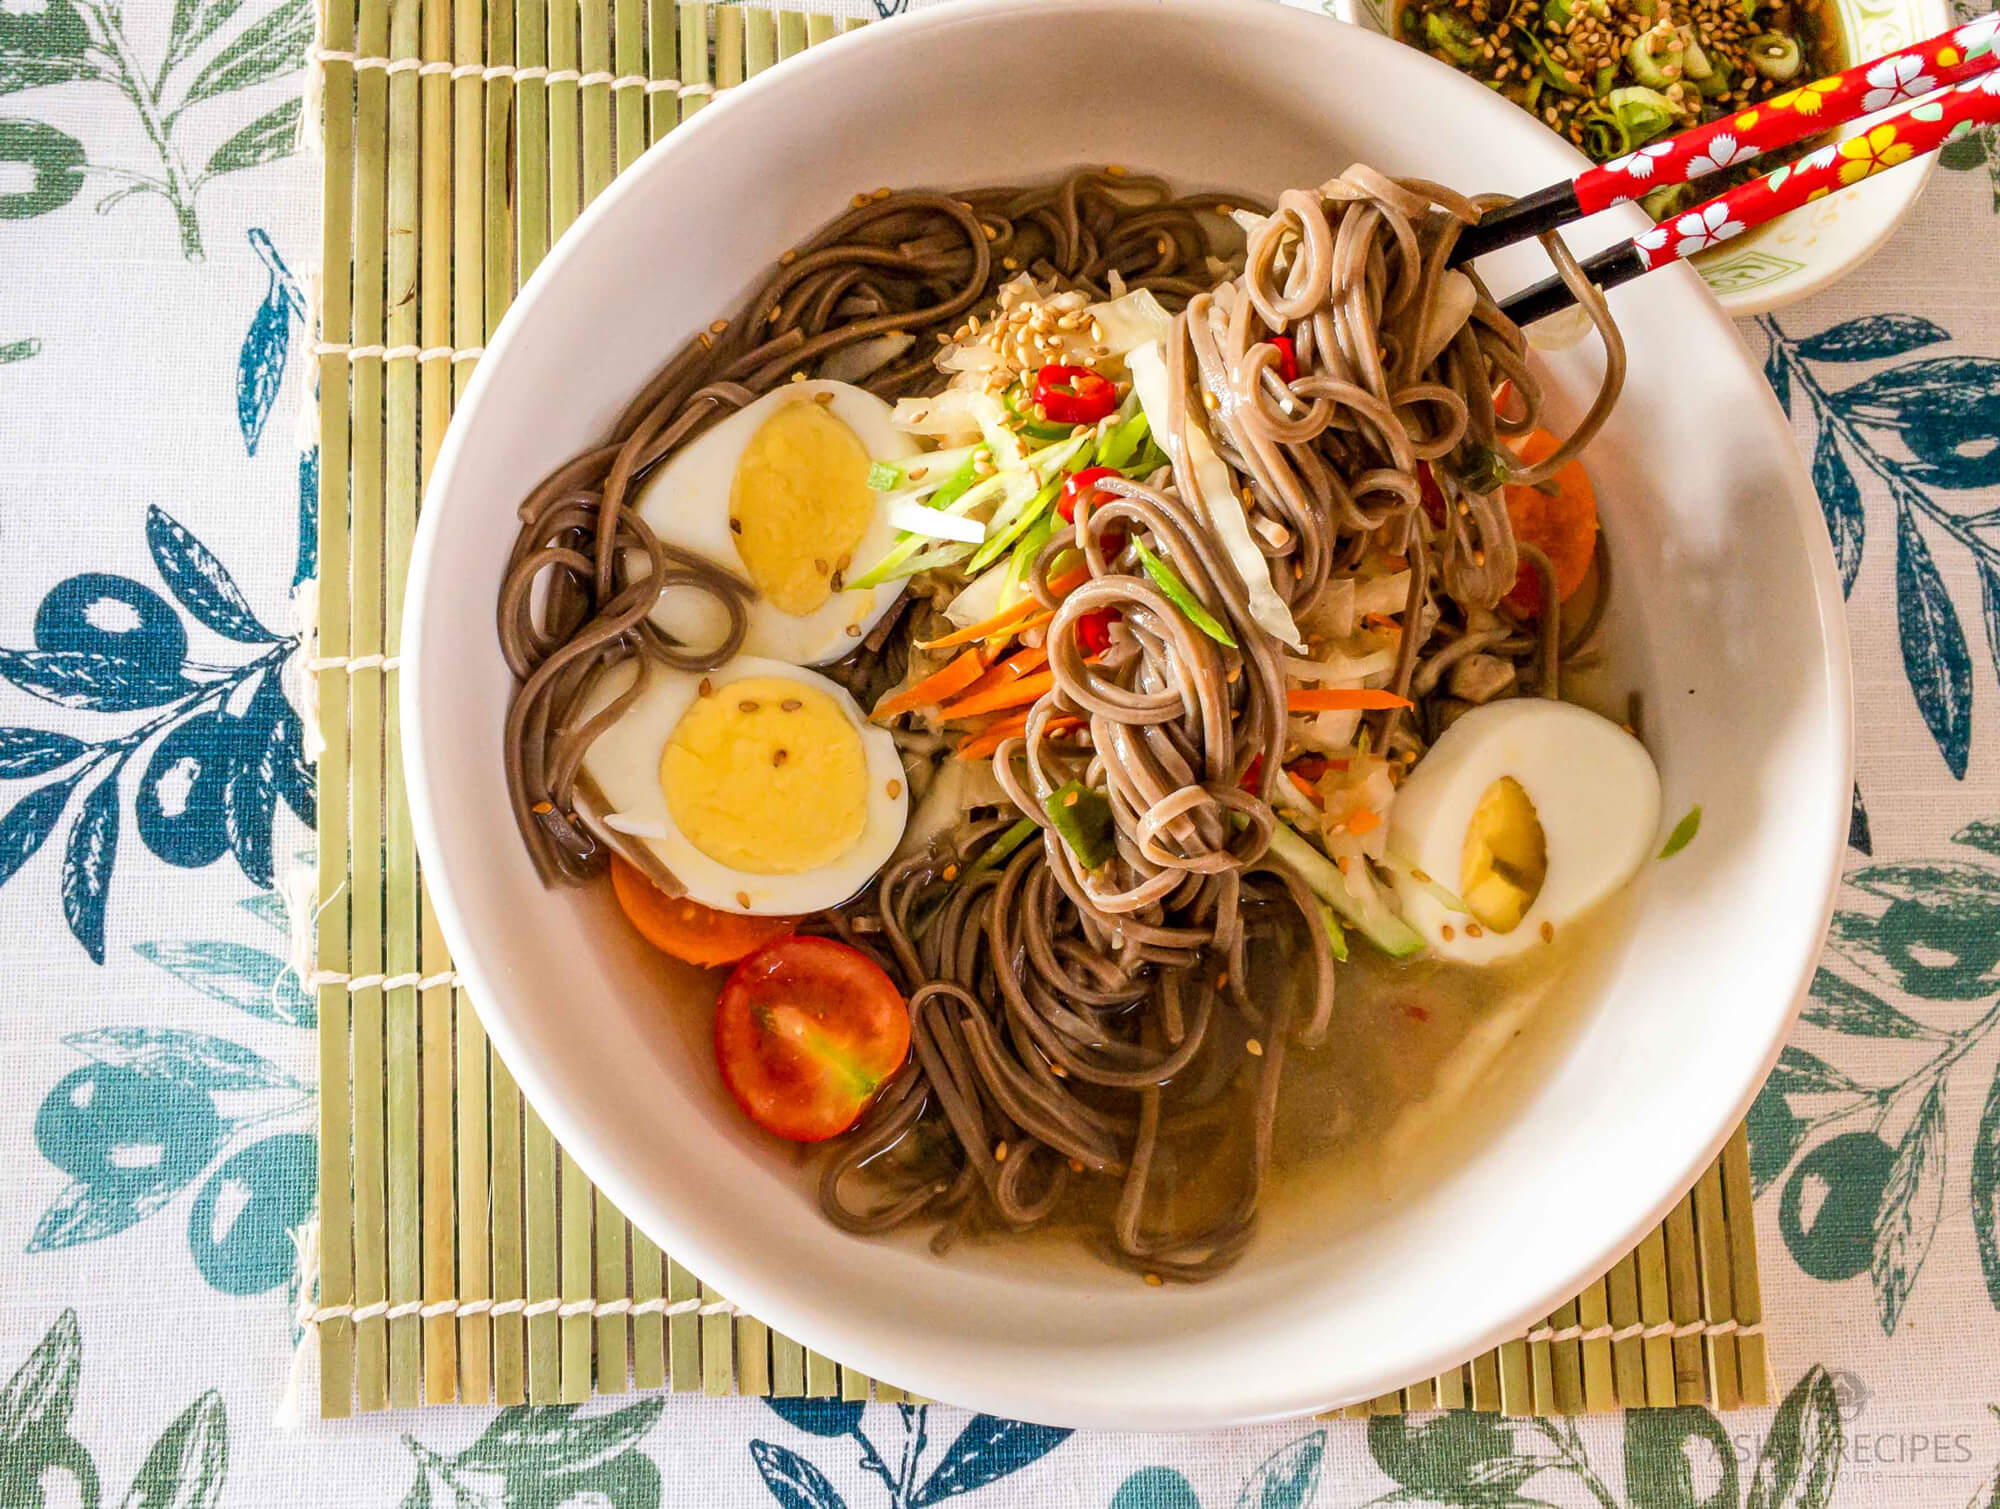 Korean-style cold buckwheat noodles served in a delicious chilled broth made from Kombu seaweed, dried anchovies, and juices from white kimchi.